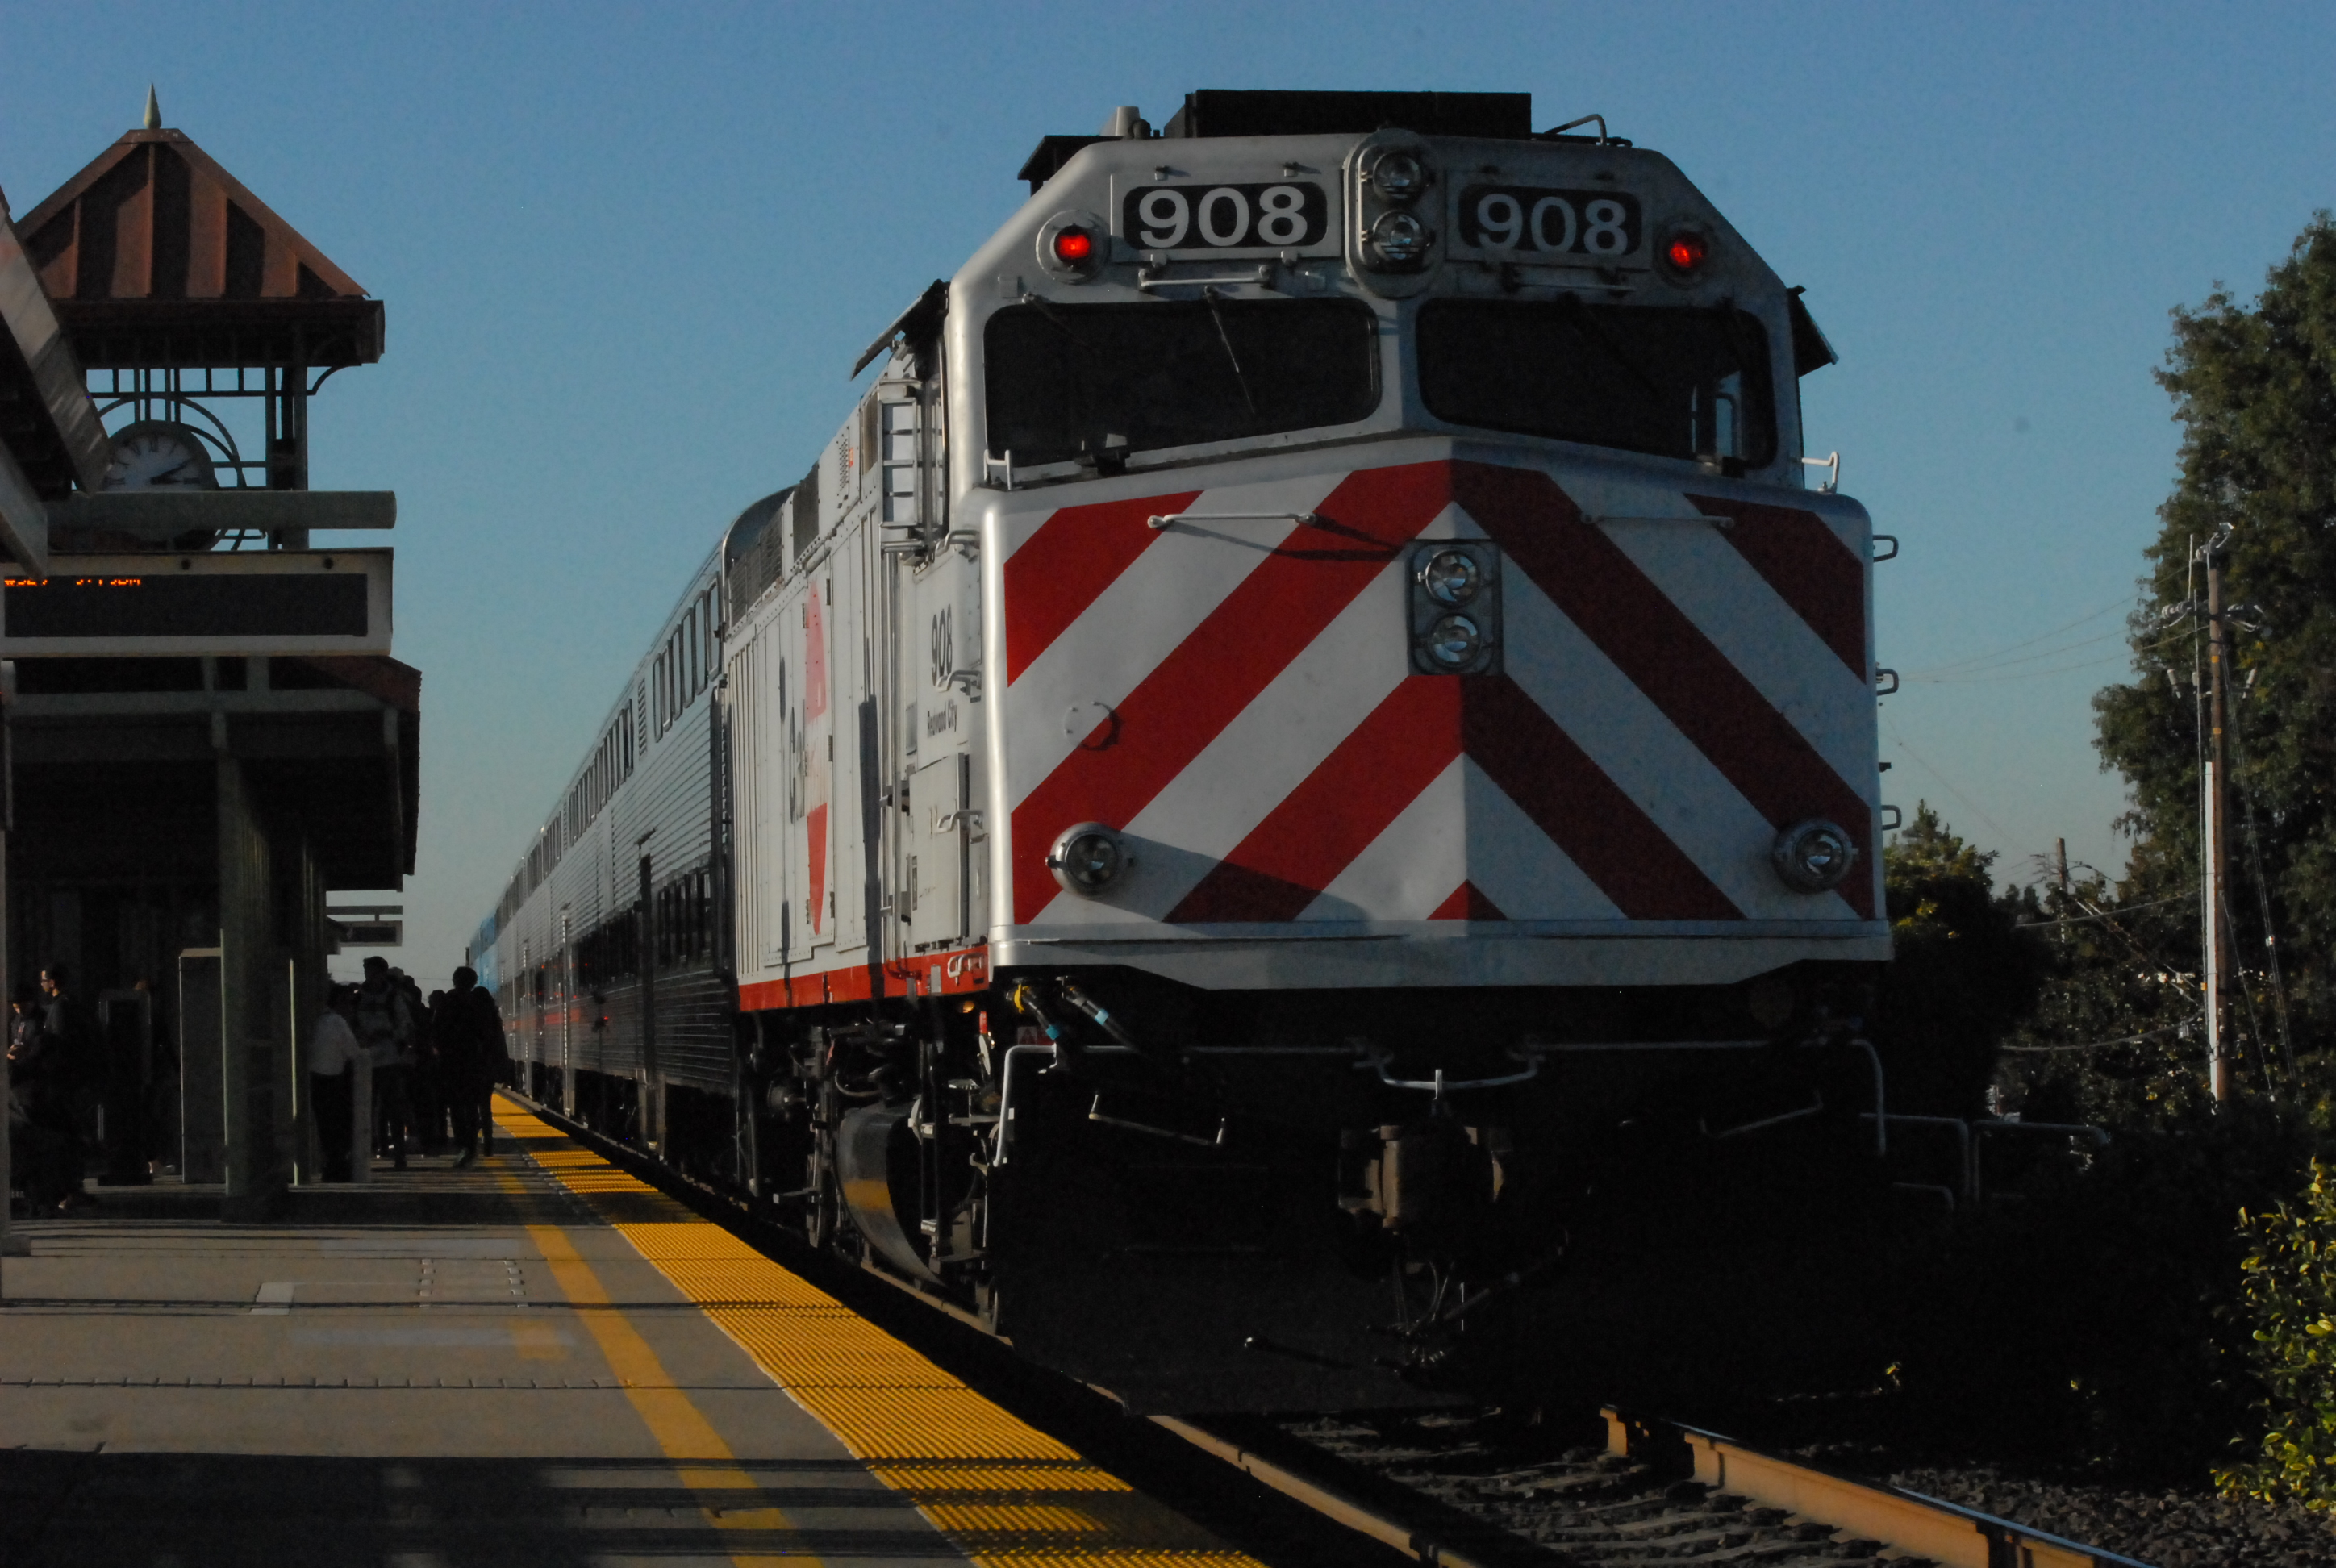 Caltrain locomotive unit 908, Redwood City, acting as a trailer on a northbound trip at Belmont Station